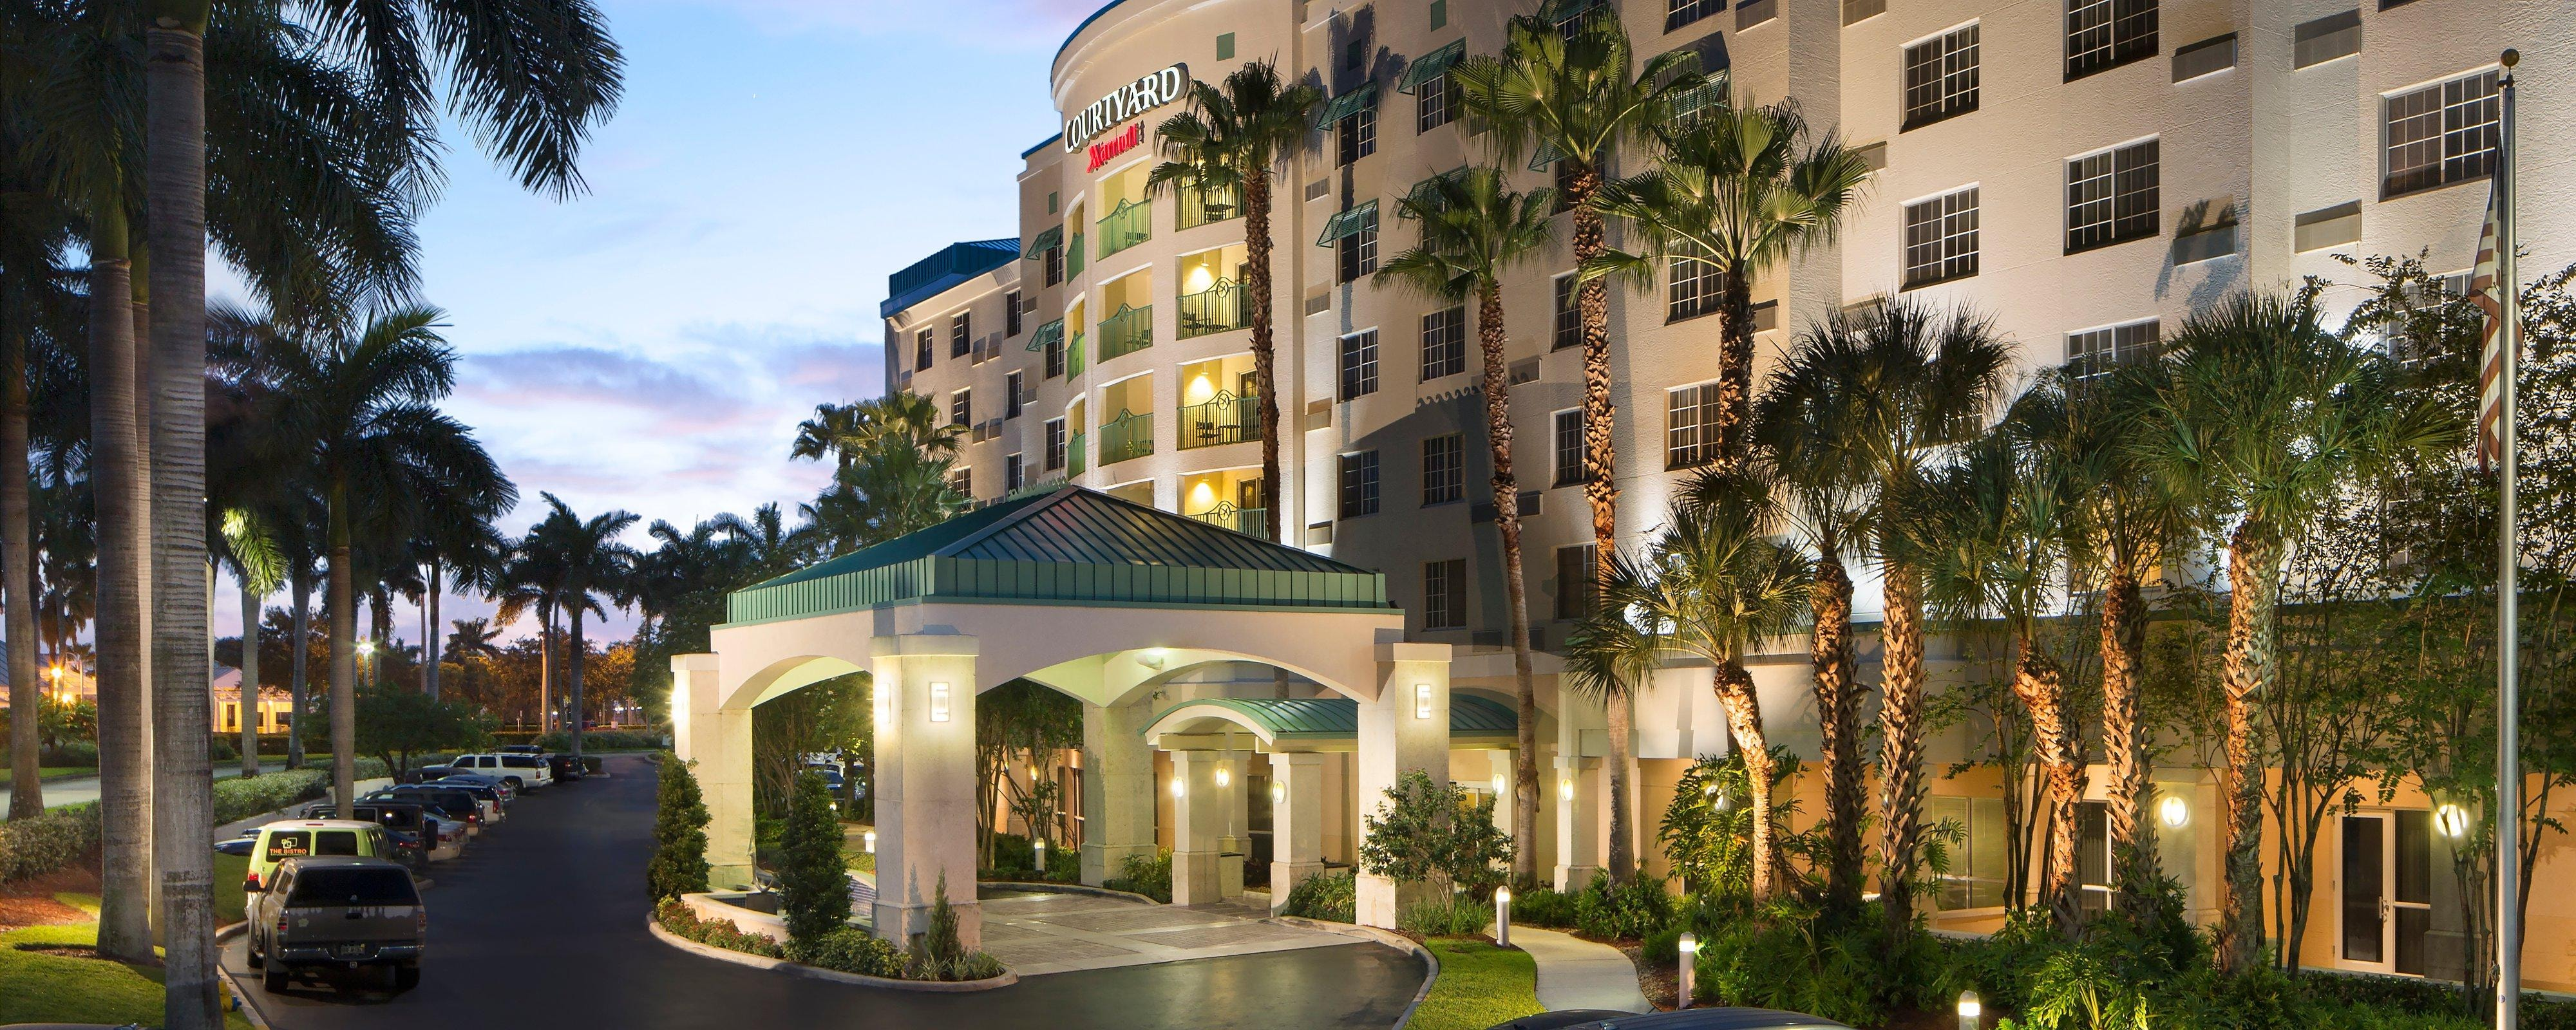 Hotels near Fort Lauderdale Airport | Courtyard Fort Lauderdale ...